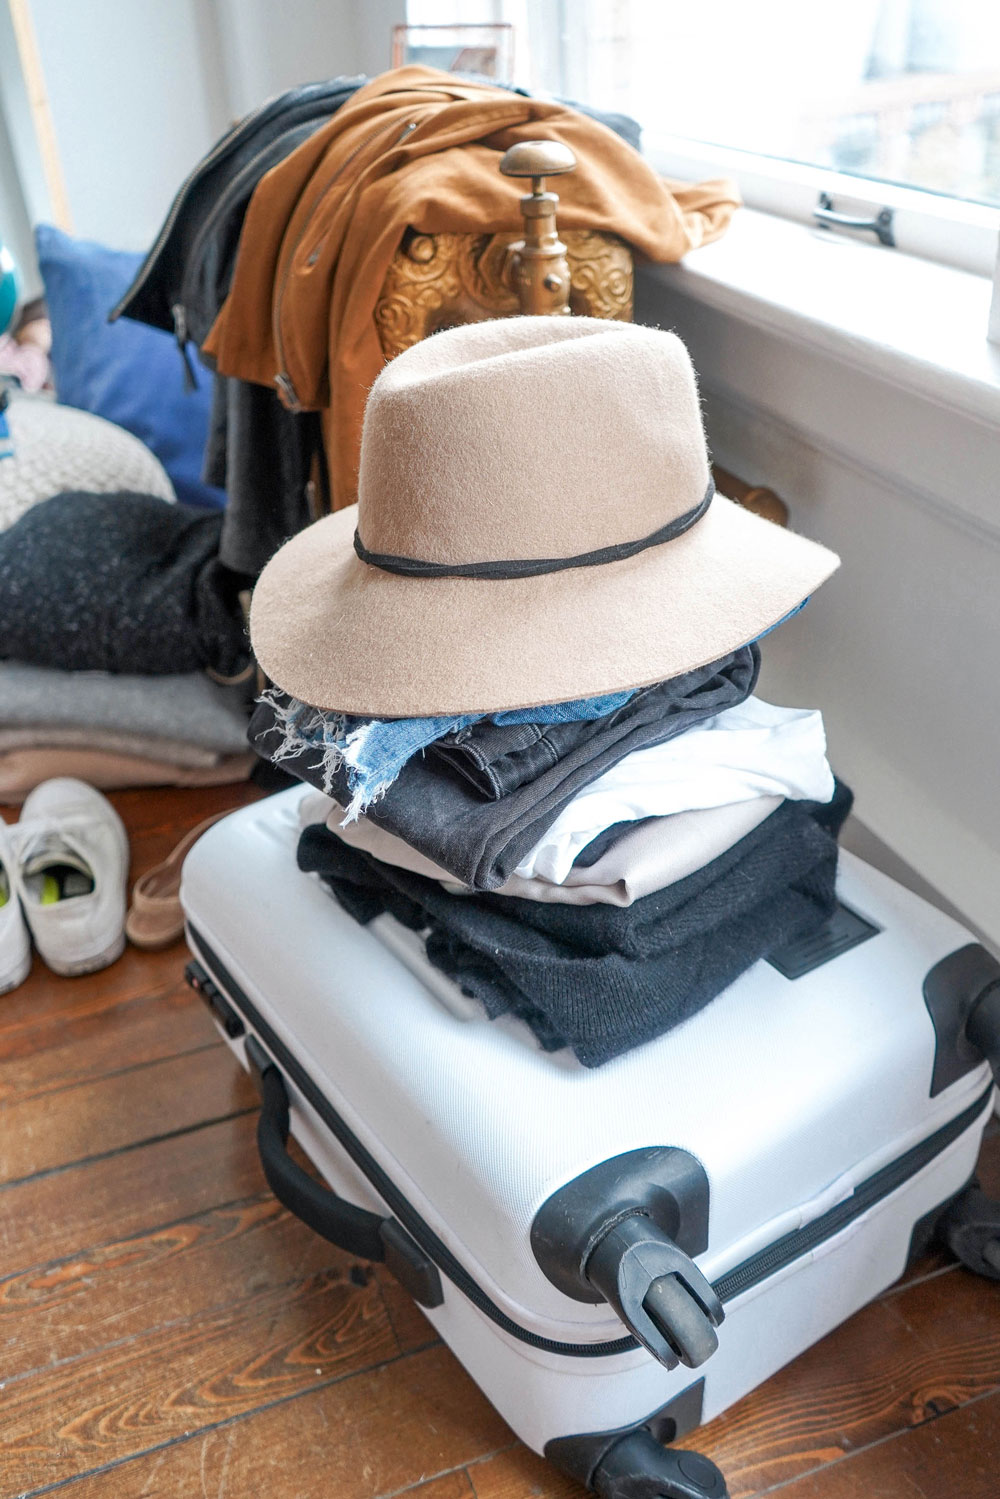 How to pack a carry on bag for 10 days